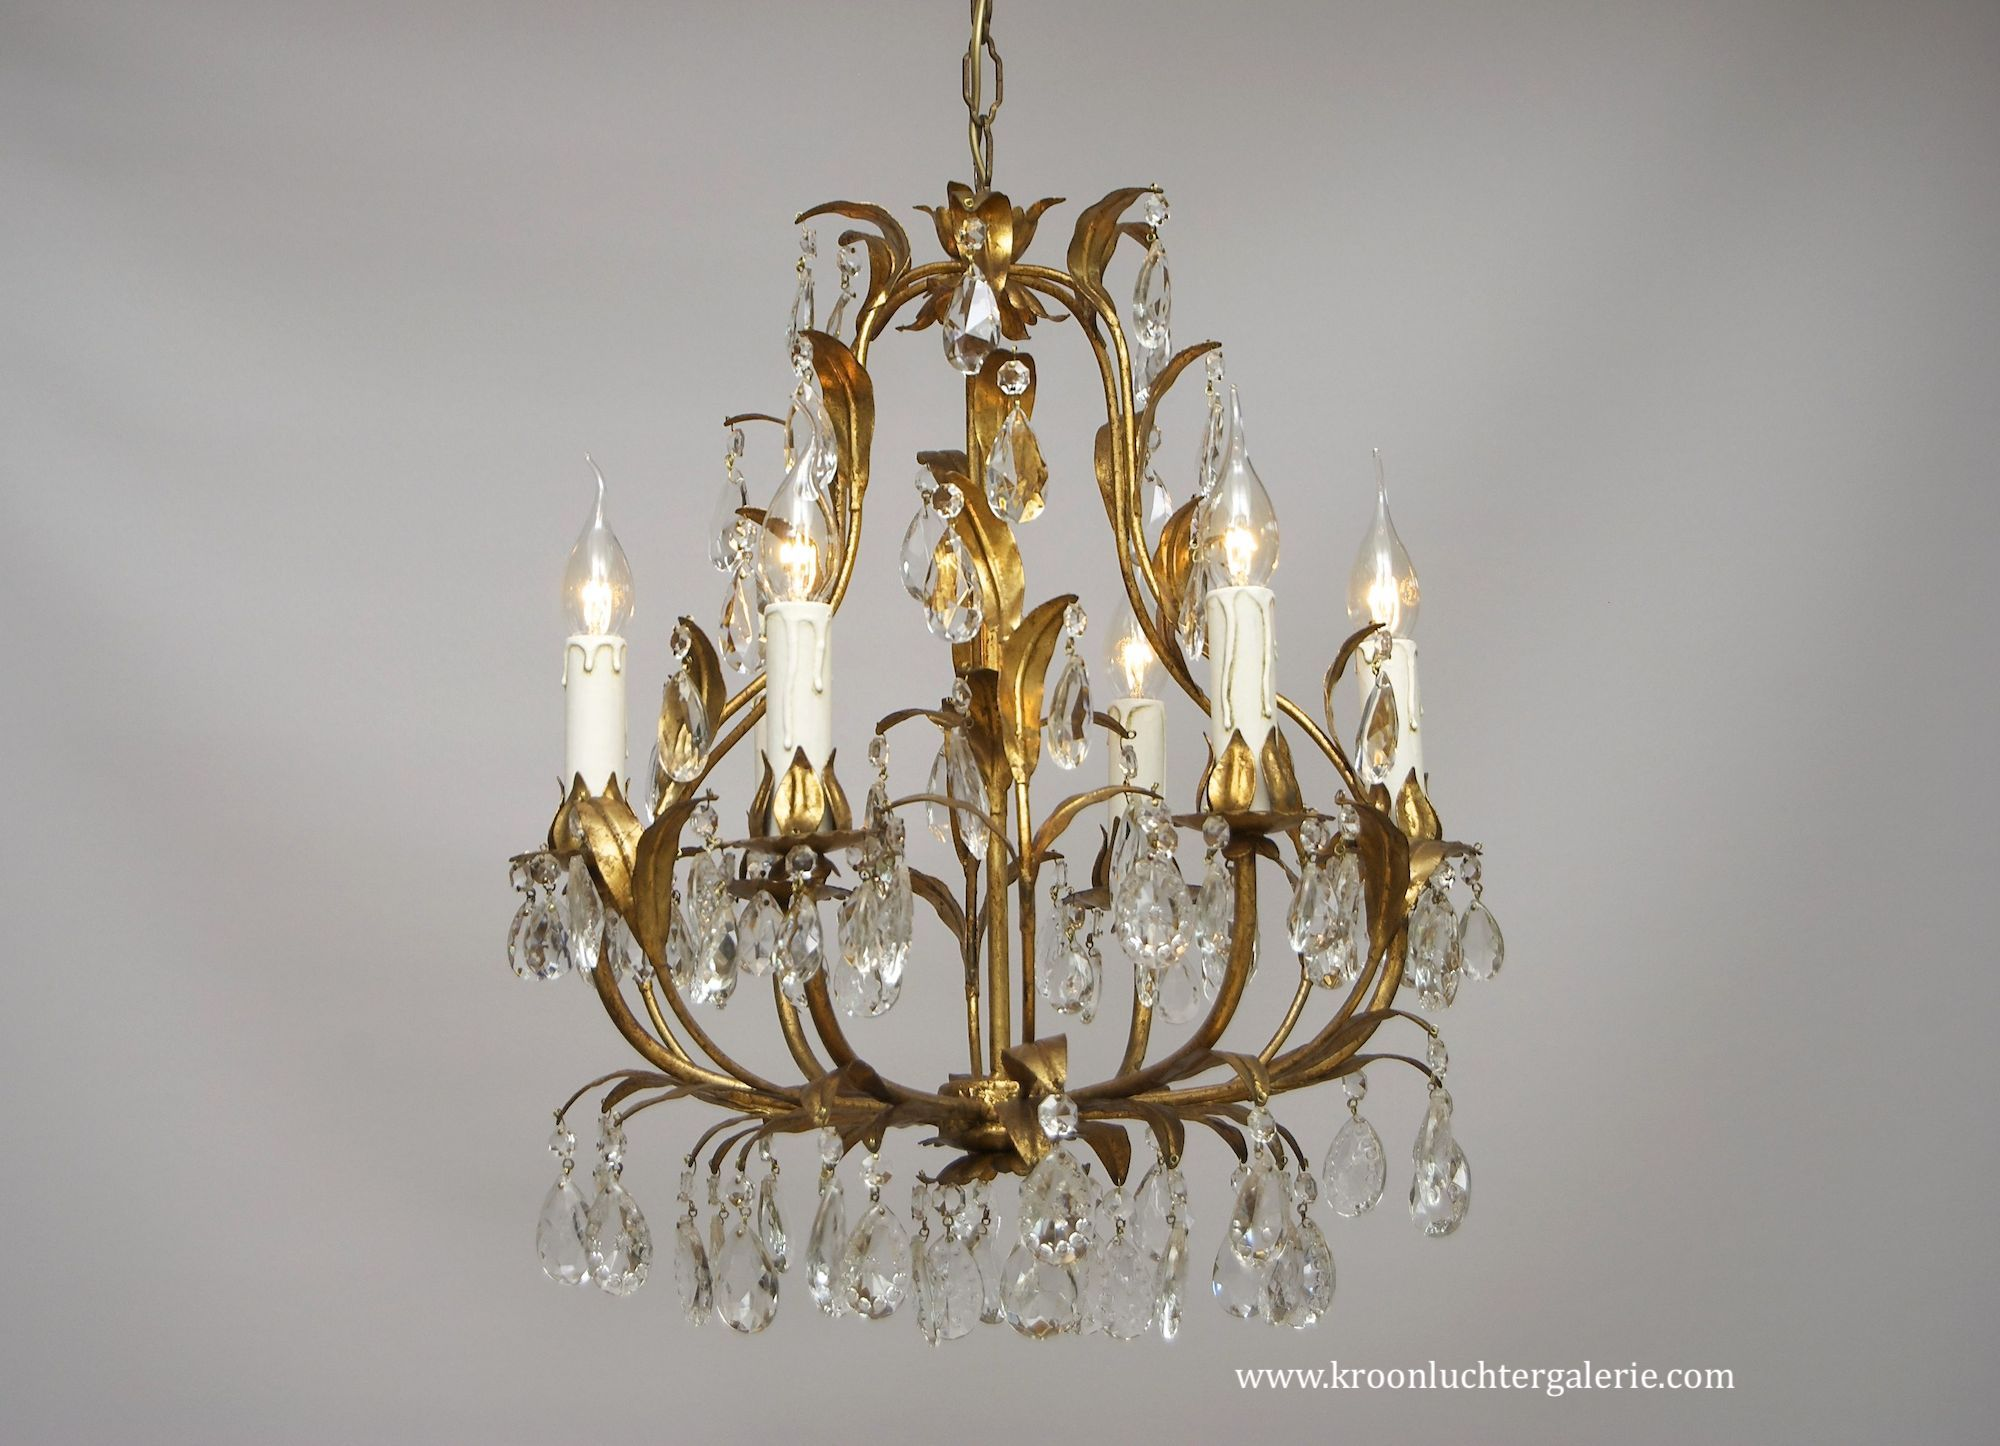 A cute Italian chandelier with 6 light